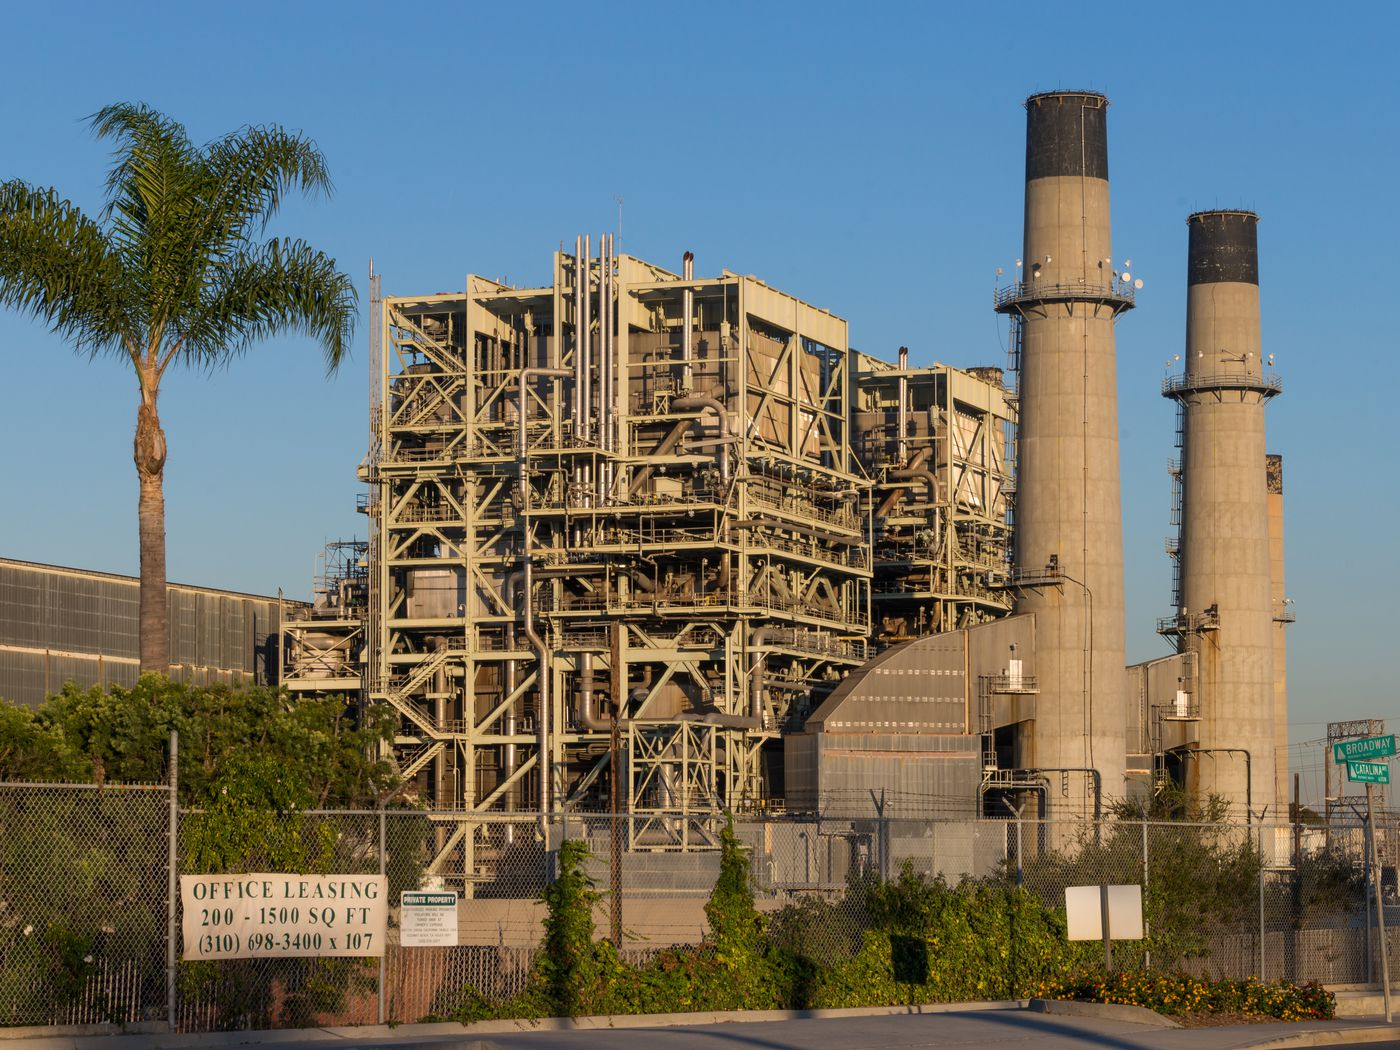 Redondo Beach power plant could be redeveloped as a park - Curbed LA